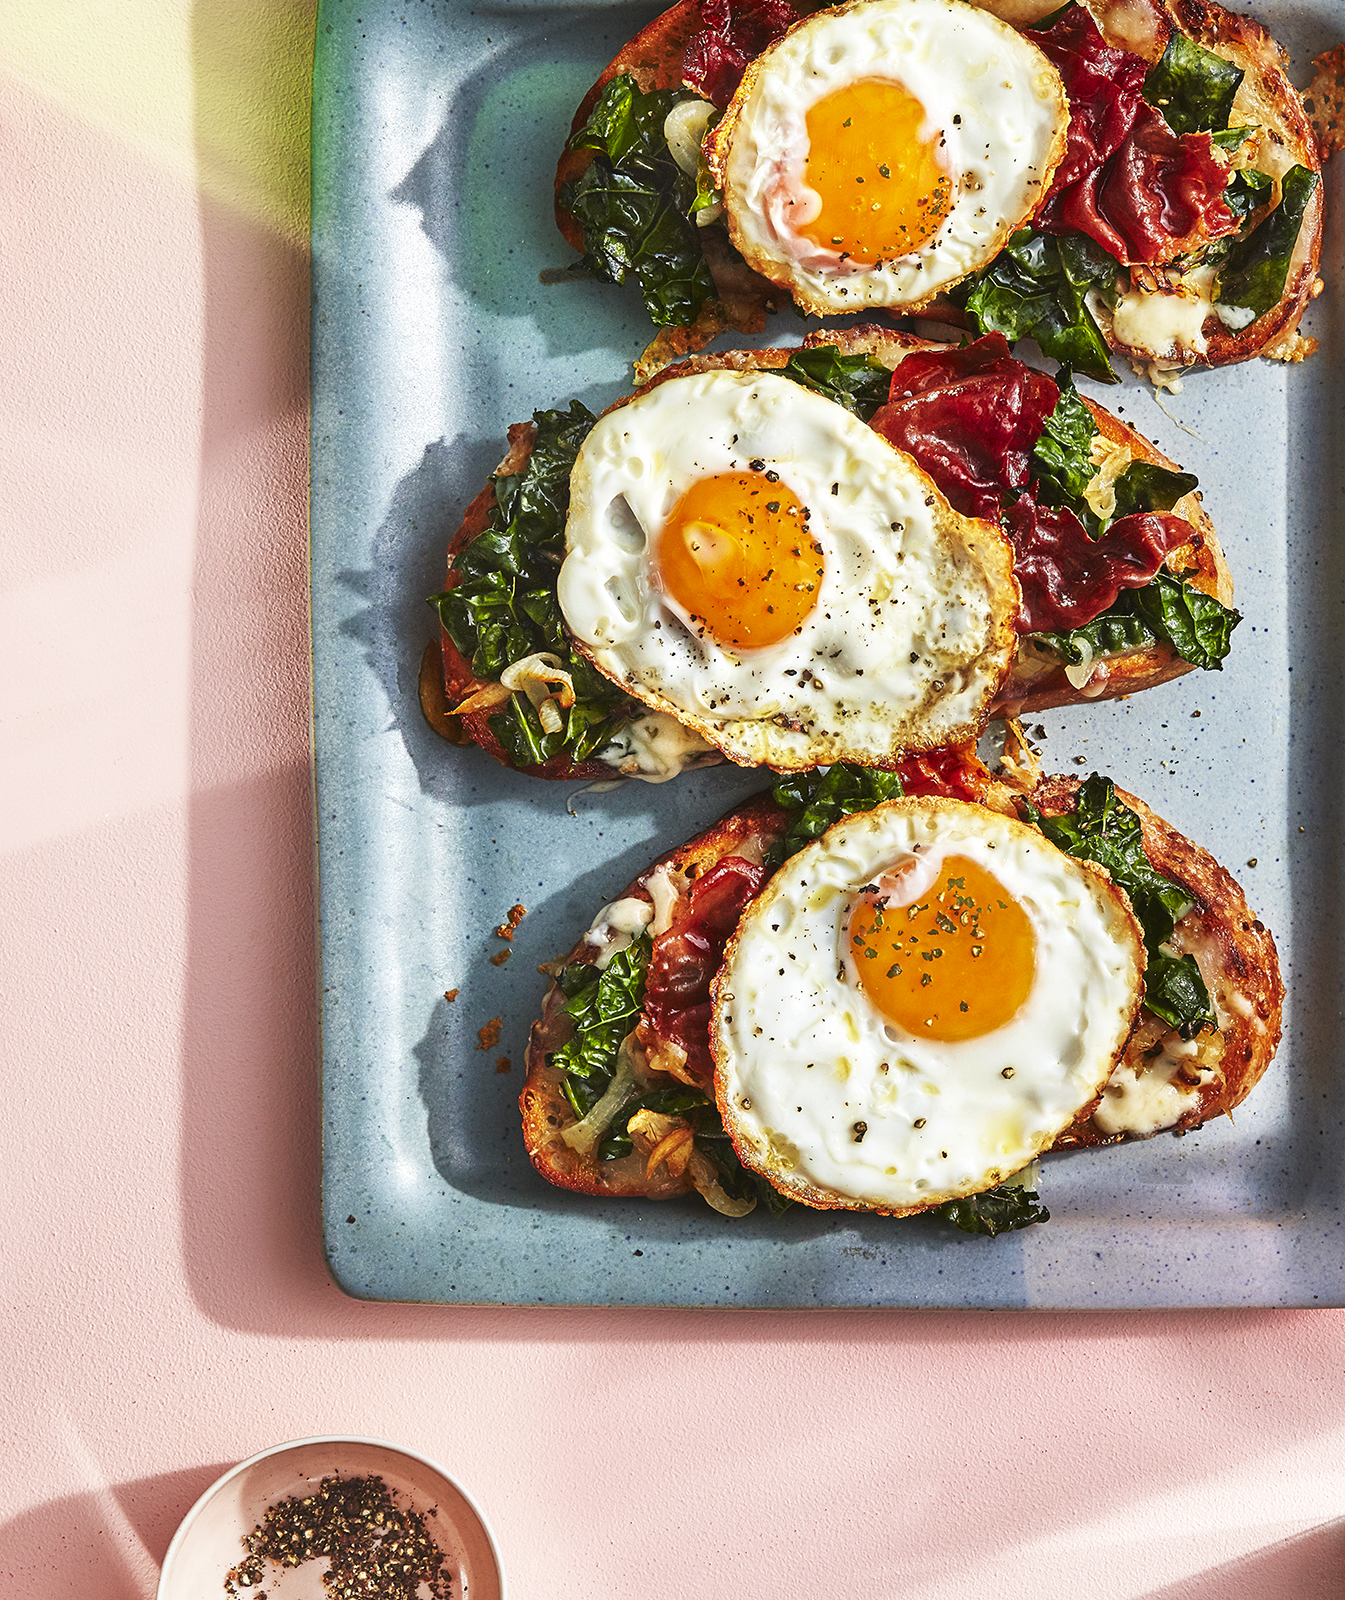 greens-tartine-prosciutto-fontina-fried-egg